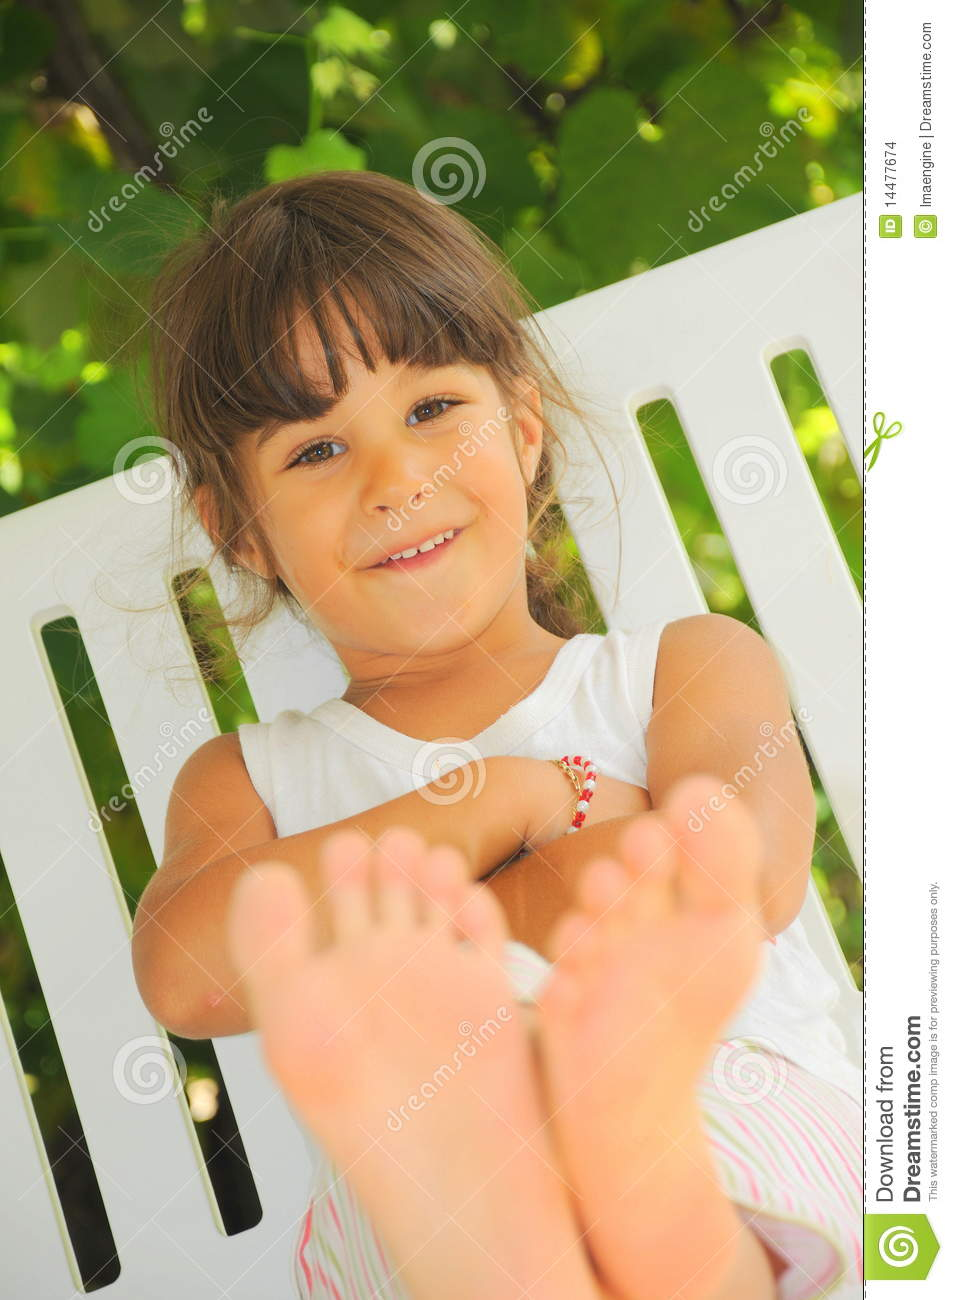 Pity, that young girl model feet